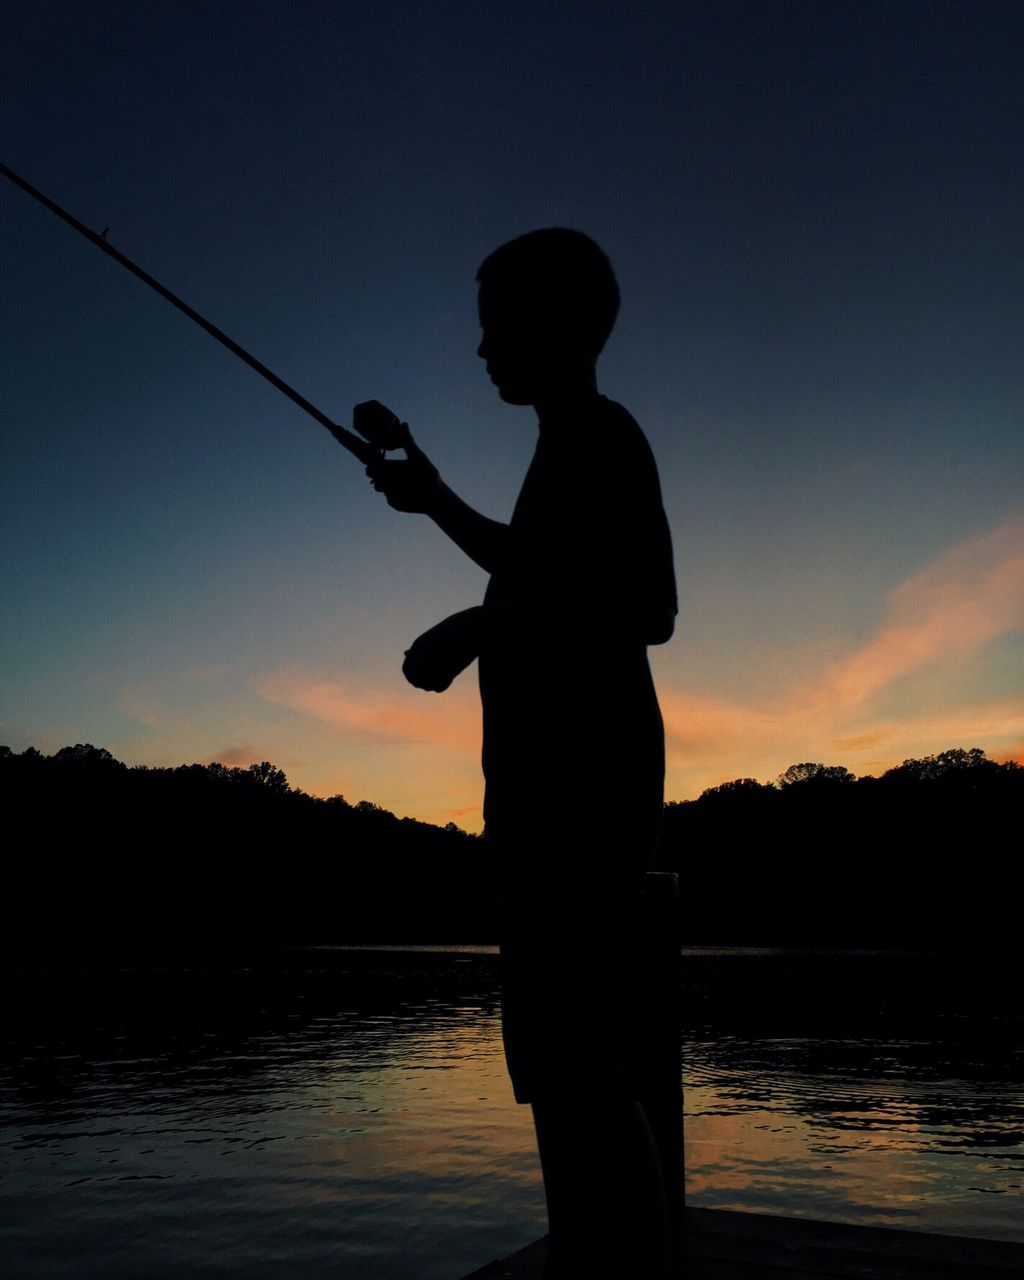 Silhouette Man Fishing By River Against Sky During Sunset